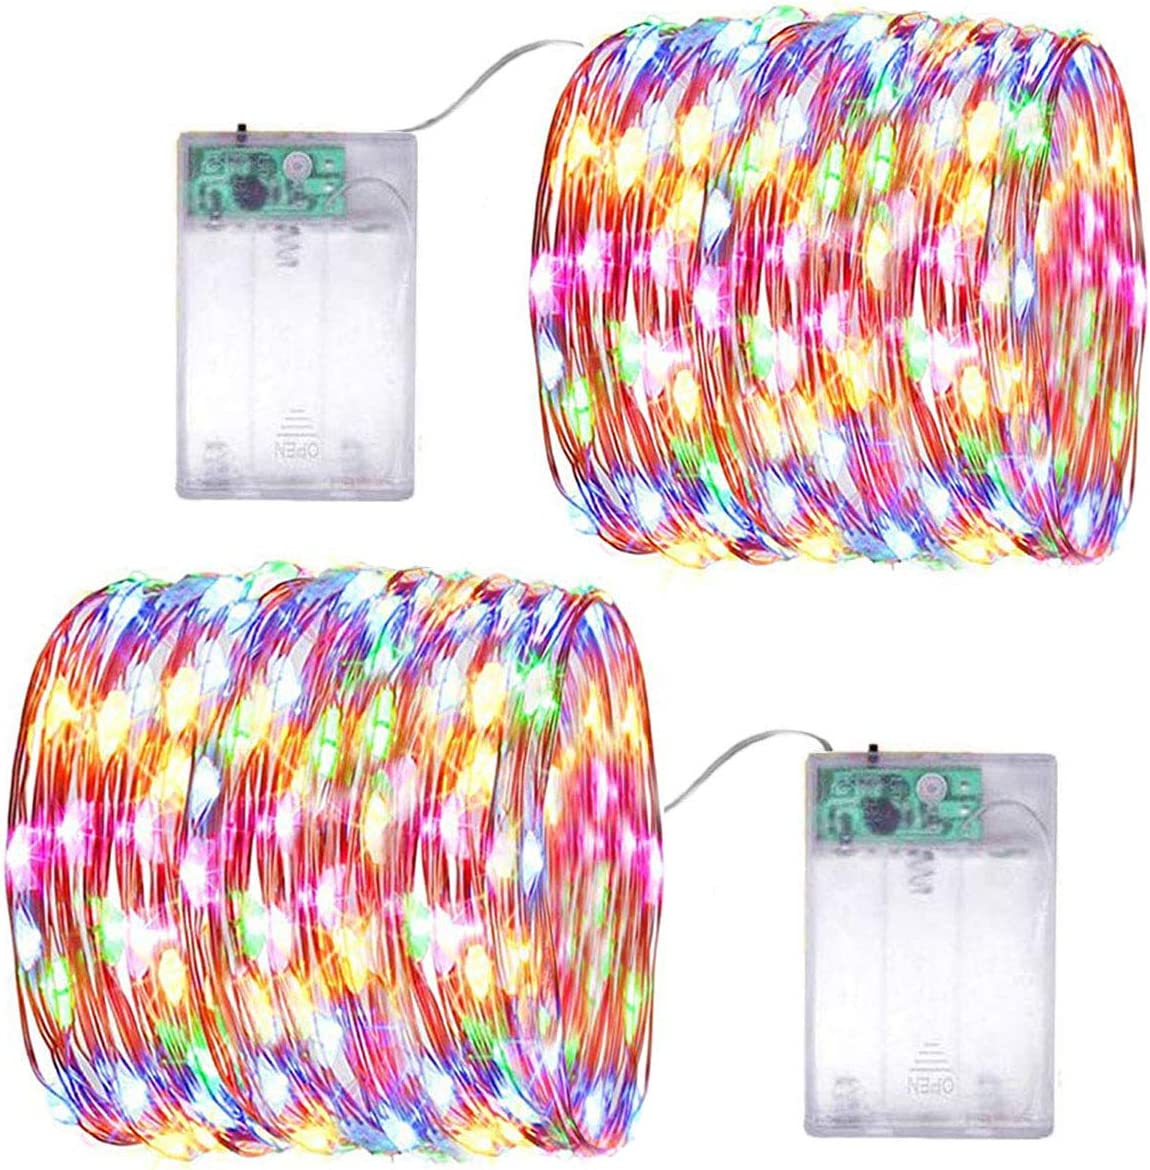 LiyuanQ Battery Operated String Lights, 2 Pack Led Mini String Lights 50 LED 16.5 FT Battery Powered Sliver Wire Starry Fairy Lights for Indoor Outdoor Wedding Home Garden Party Decor (Multi Color)